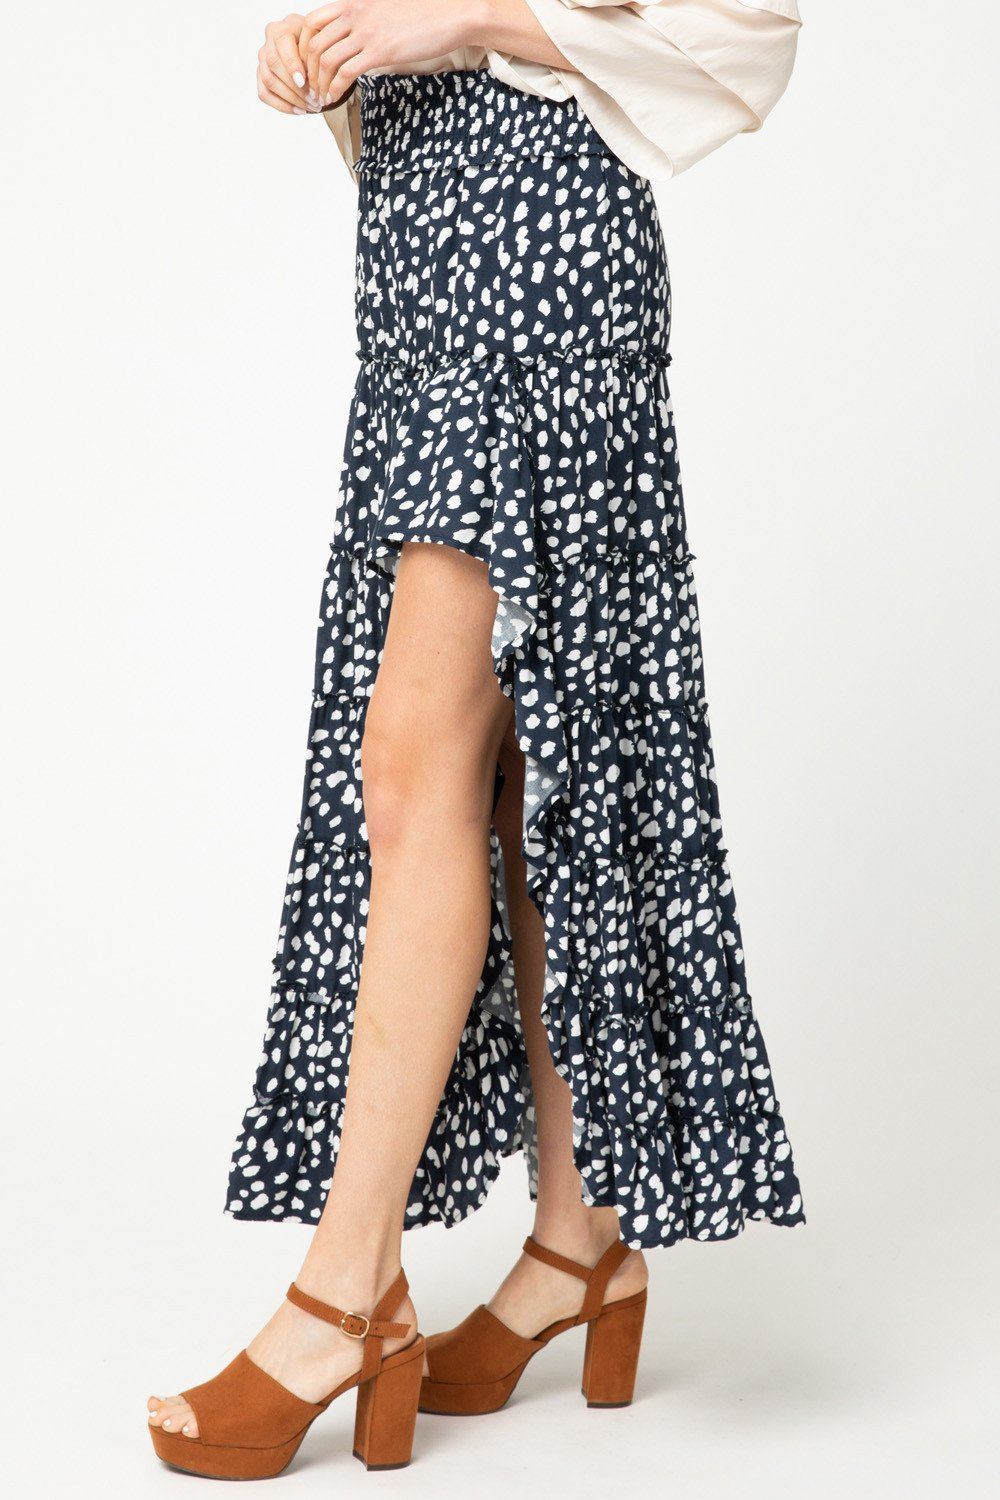 Ramona High Low Ruffle Skirt - Navy